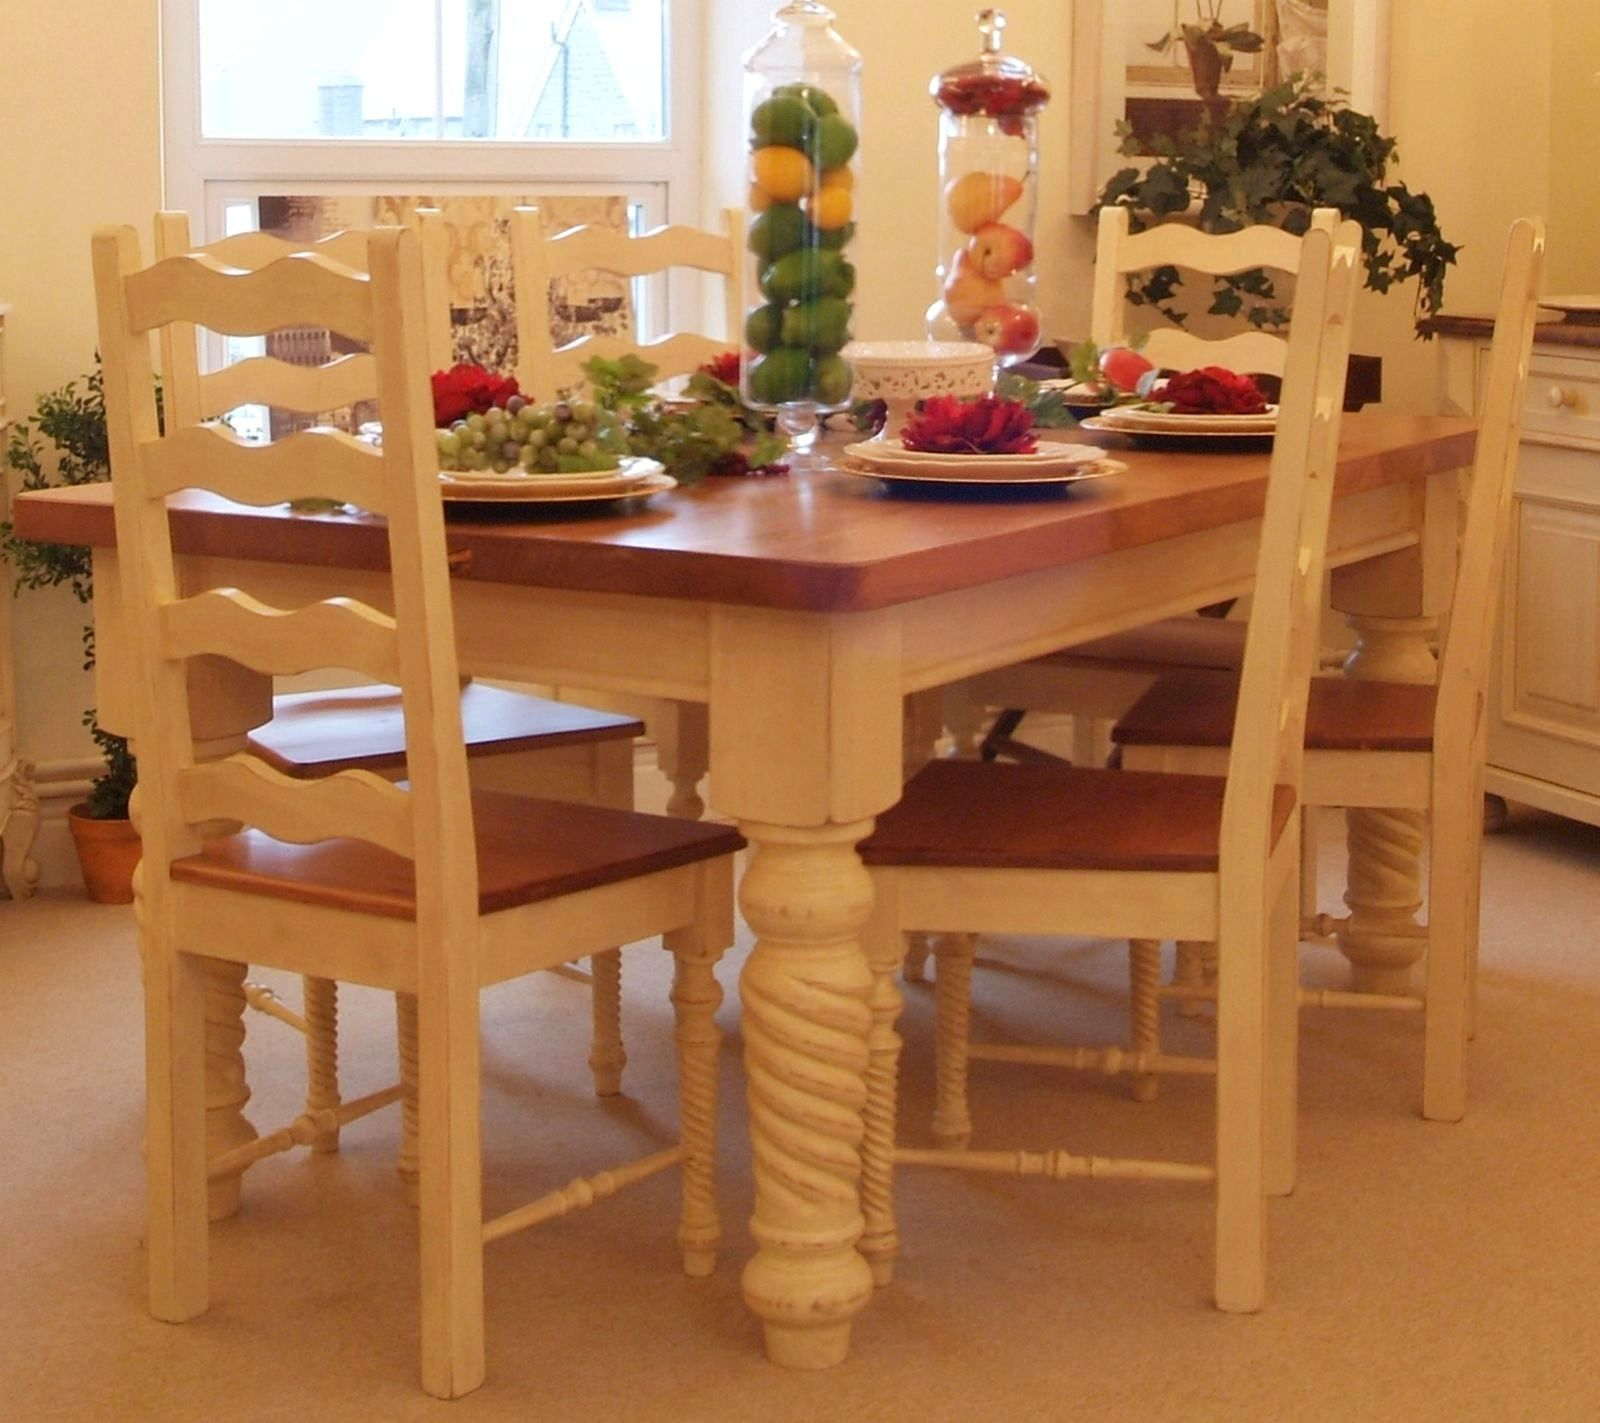 Kitchen Chair Designs: Country Style Kitchen: What Is It?